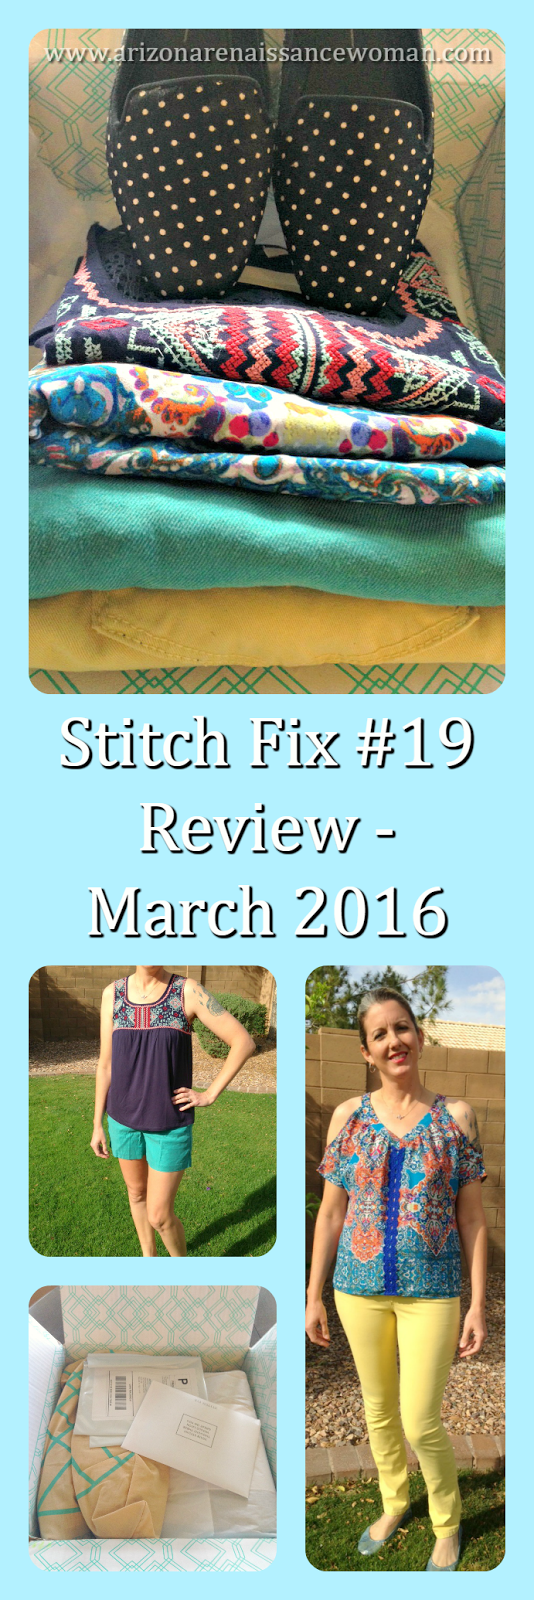 Stitch Fix #19 Review - March 2016 - Collage